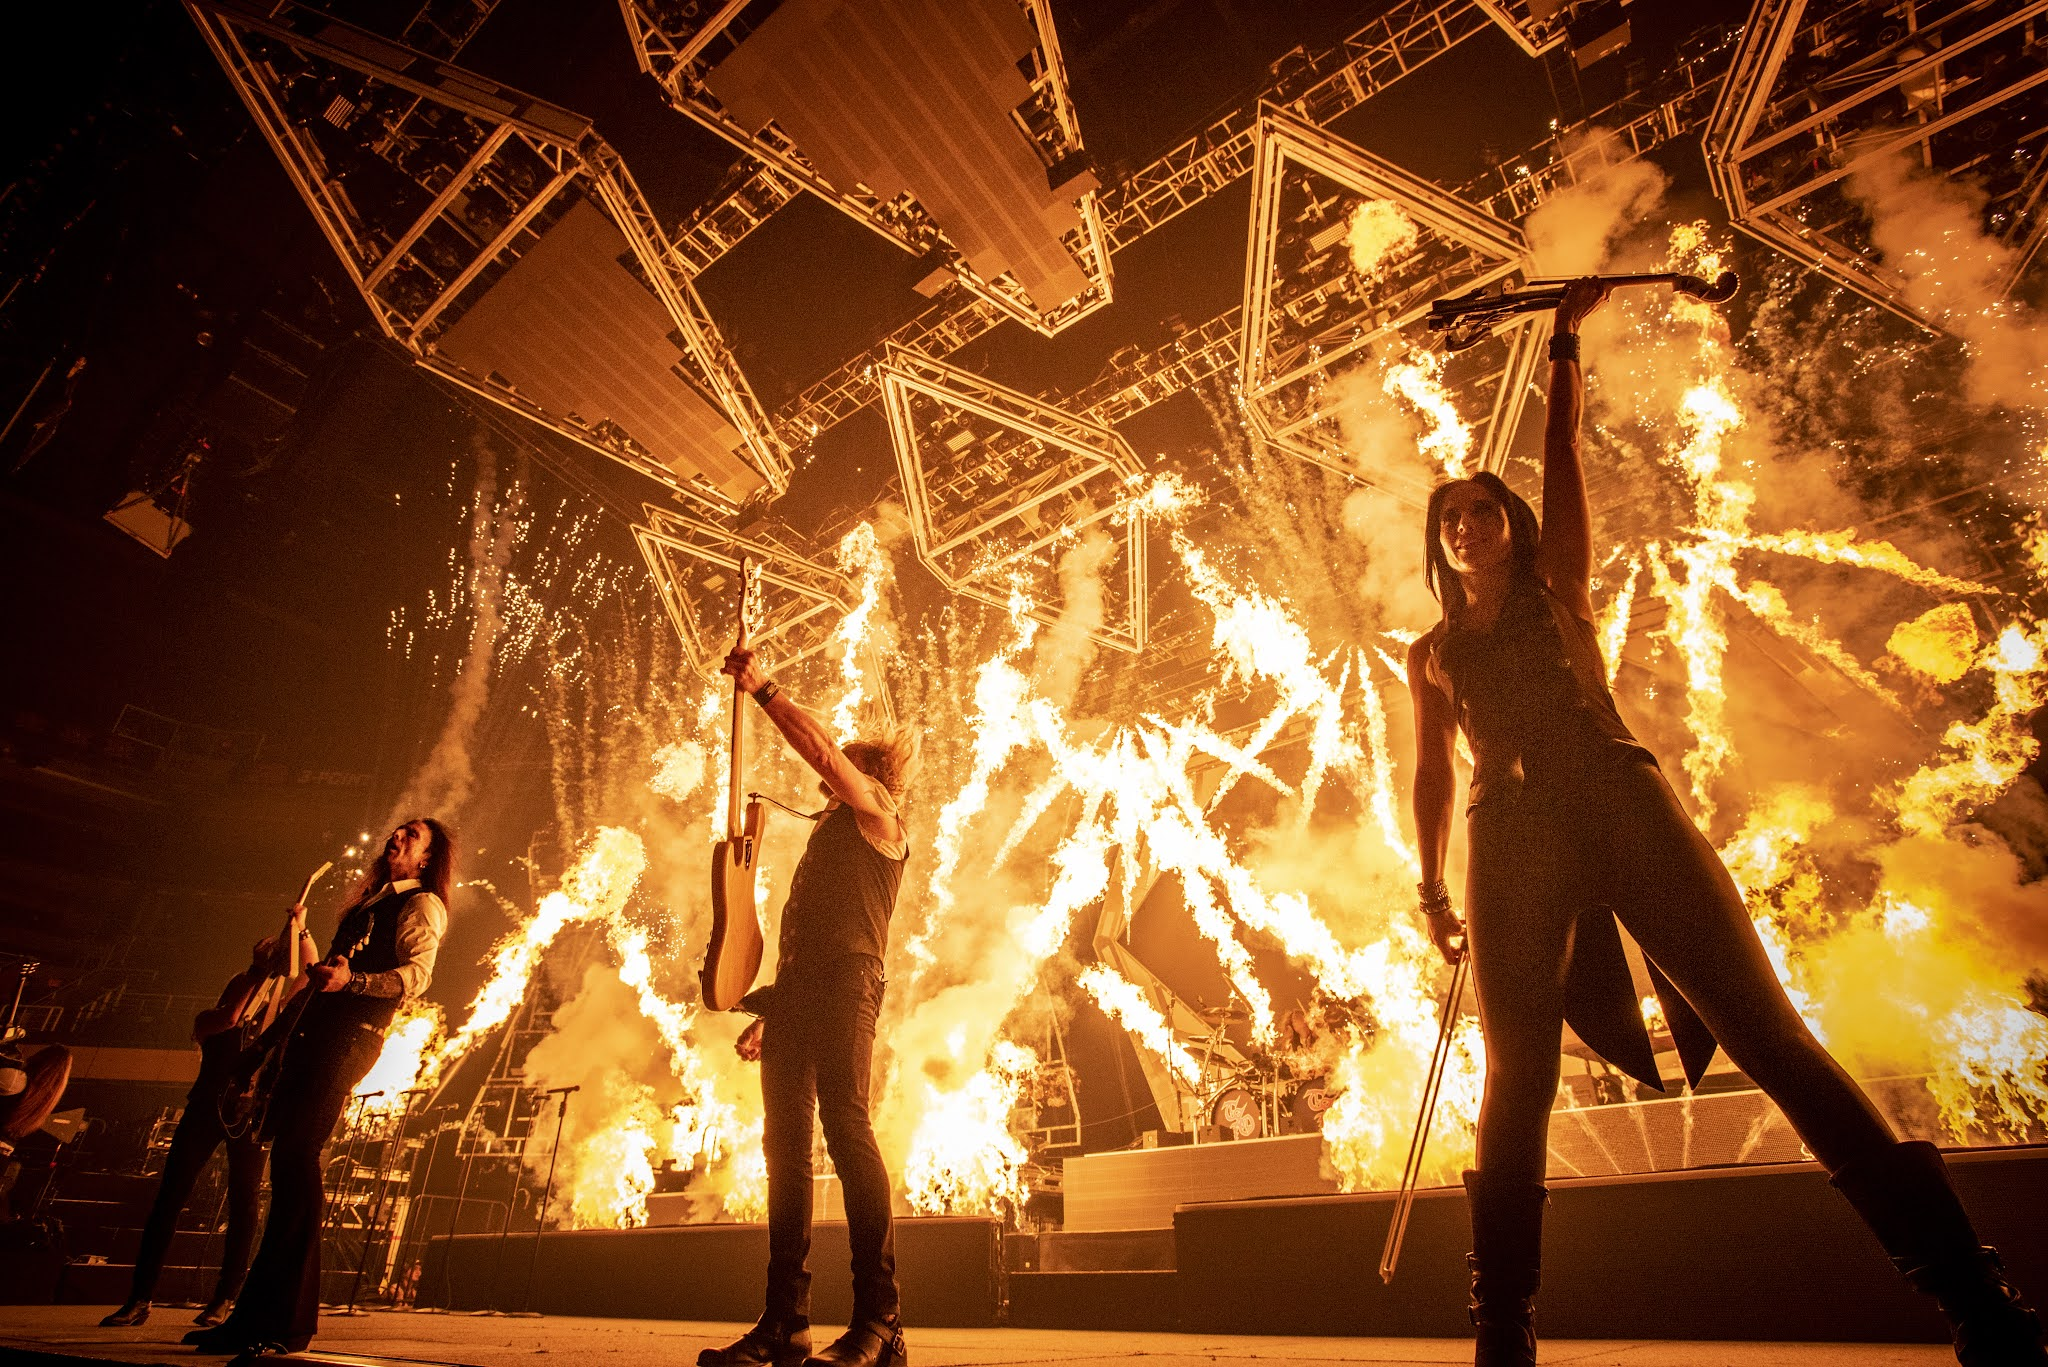 UPCOMING: Trans-Siberian Orchestra announces Winter Tour 2021